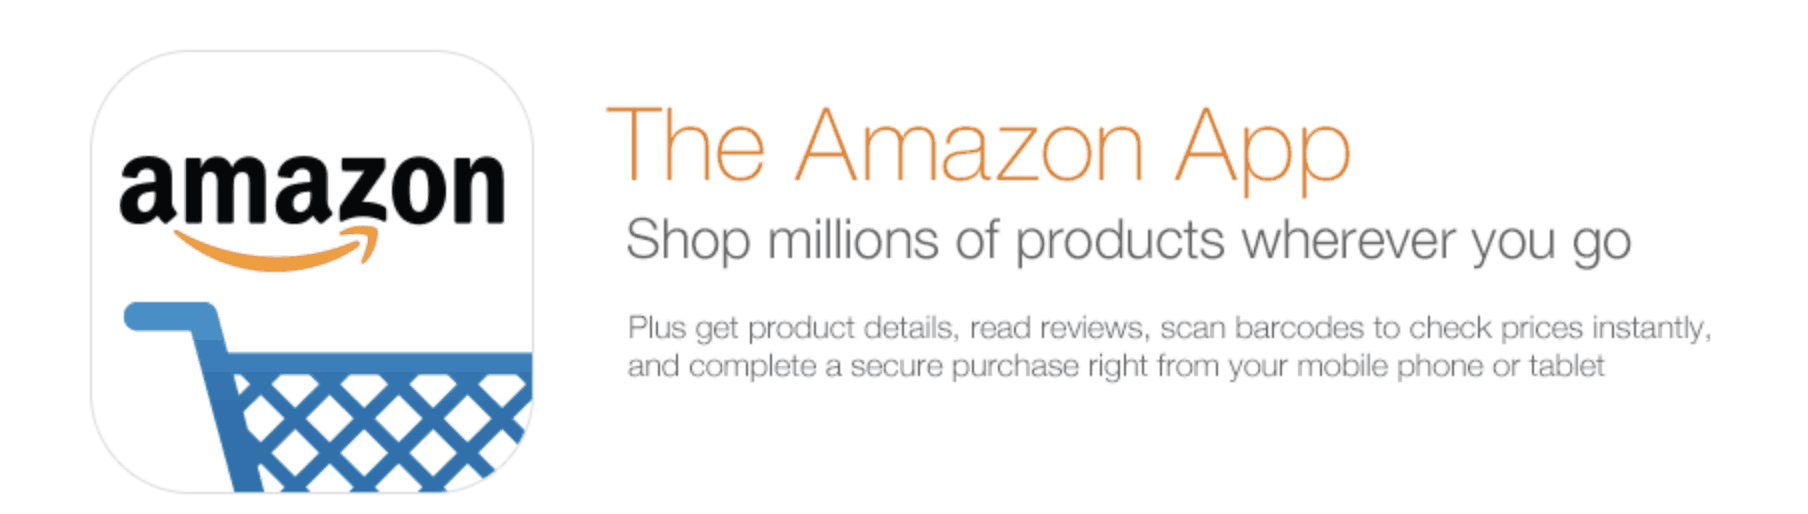 Download the Amazon App for more deals, compare prices as well as add items to your watch list!